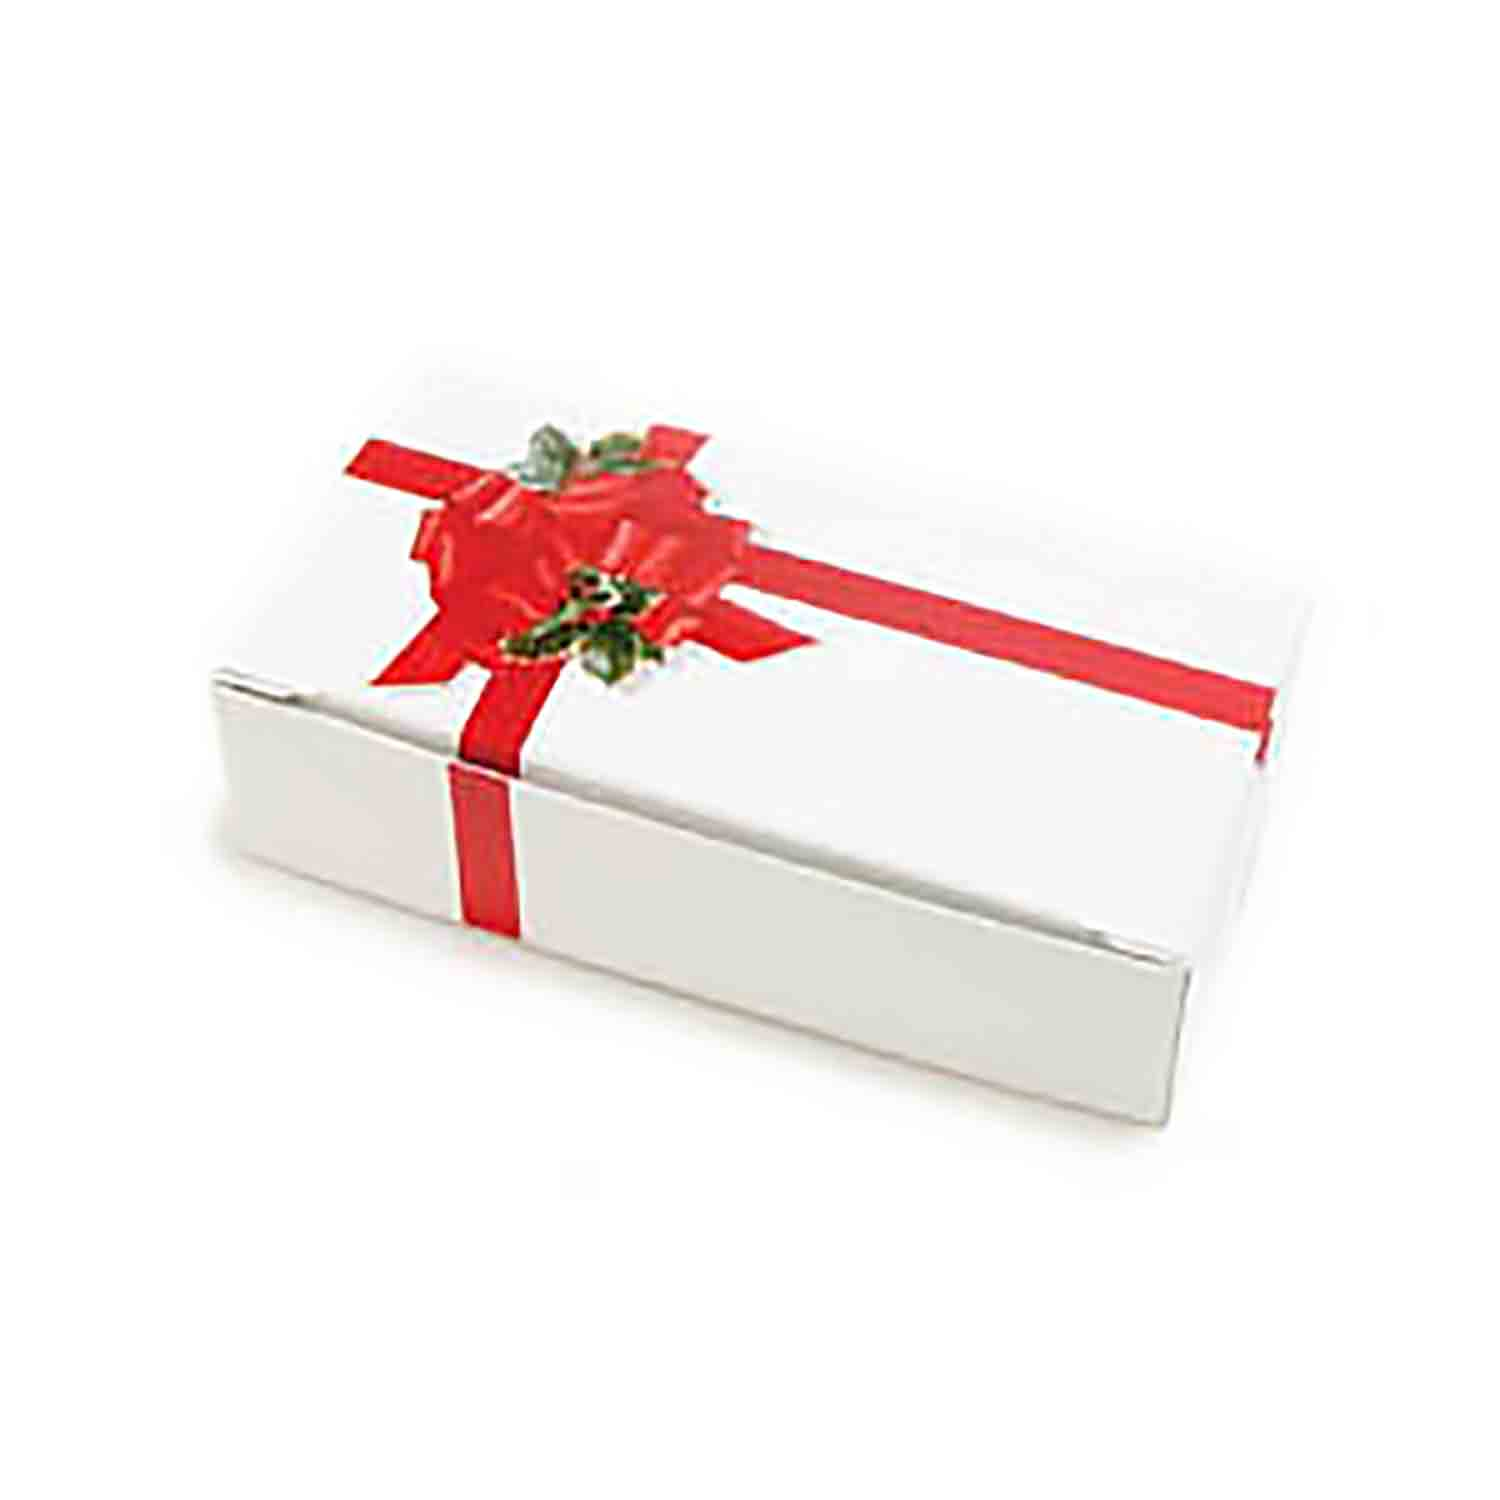 2 lb. Ribbon & Holly Candy Box